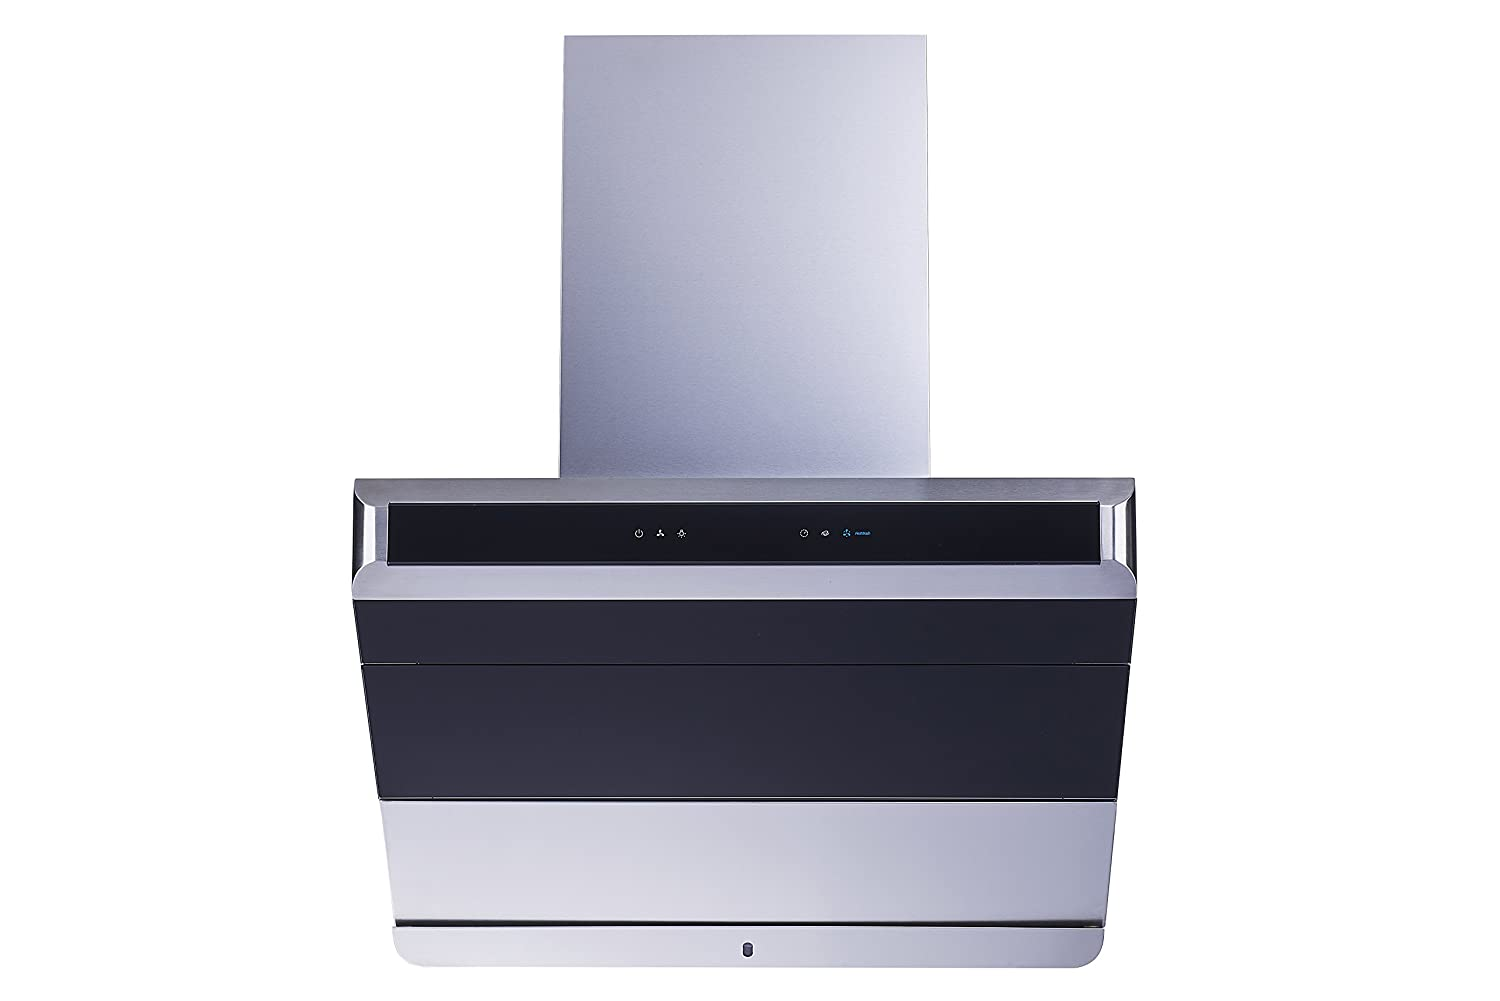 """30"""" 900 CFM Ducted Stainless Steel and Glass Wall mount Range Hood with Automated fan shield, Baffle Filter, Touch Control and Self Clean"""